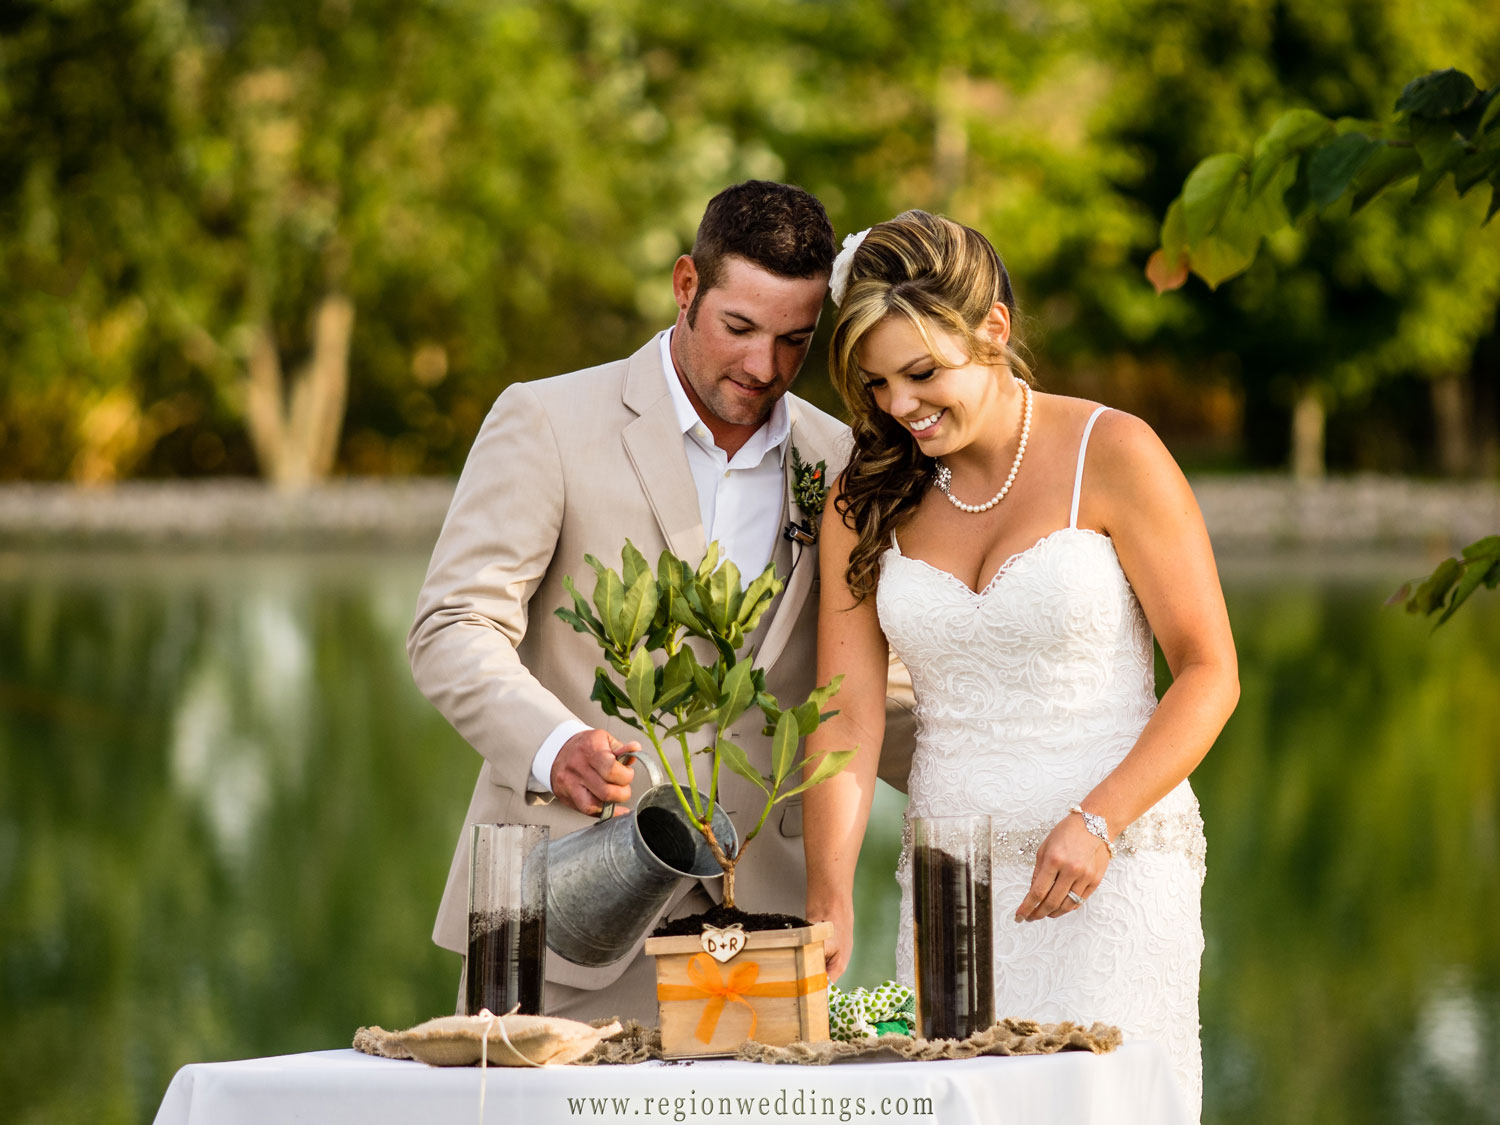 The bride and groom plant a garden together during their outdoor wedding ceremony.